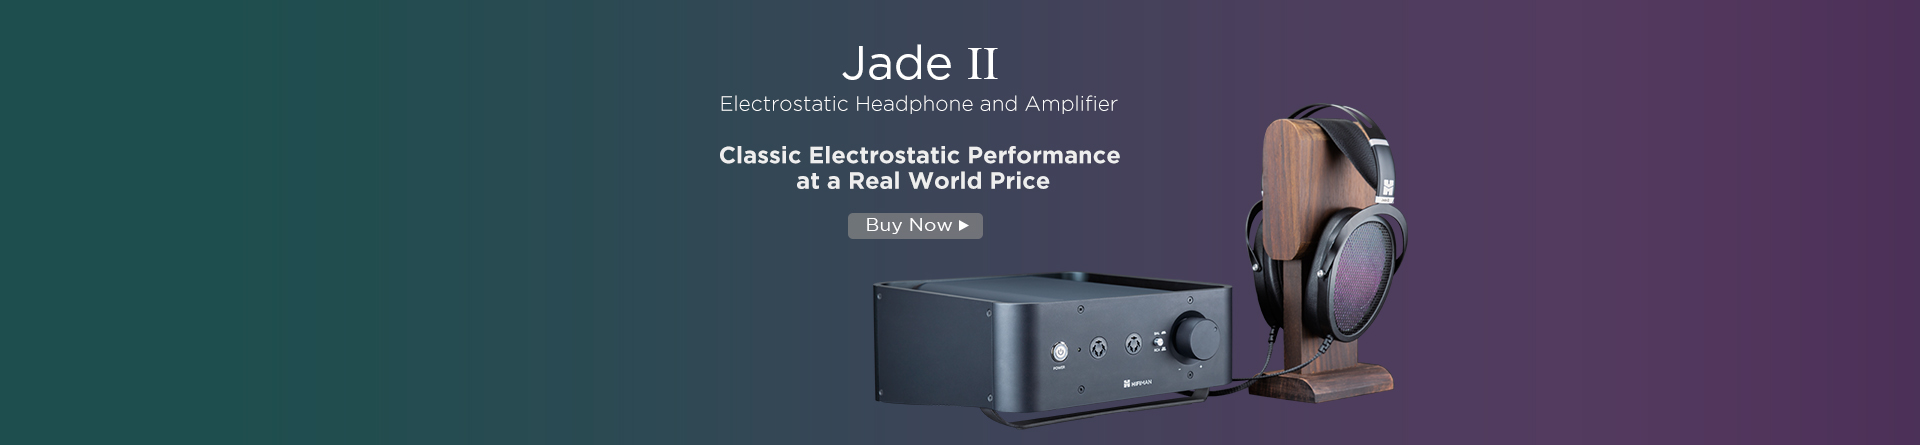 Store Banne Jade Headphones Portable Audio Hifiman Official Store